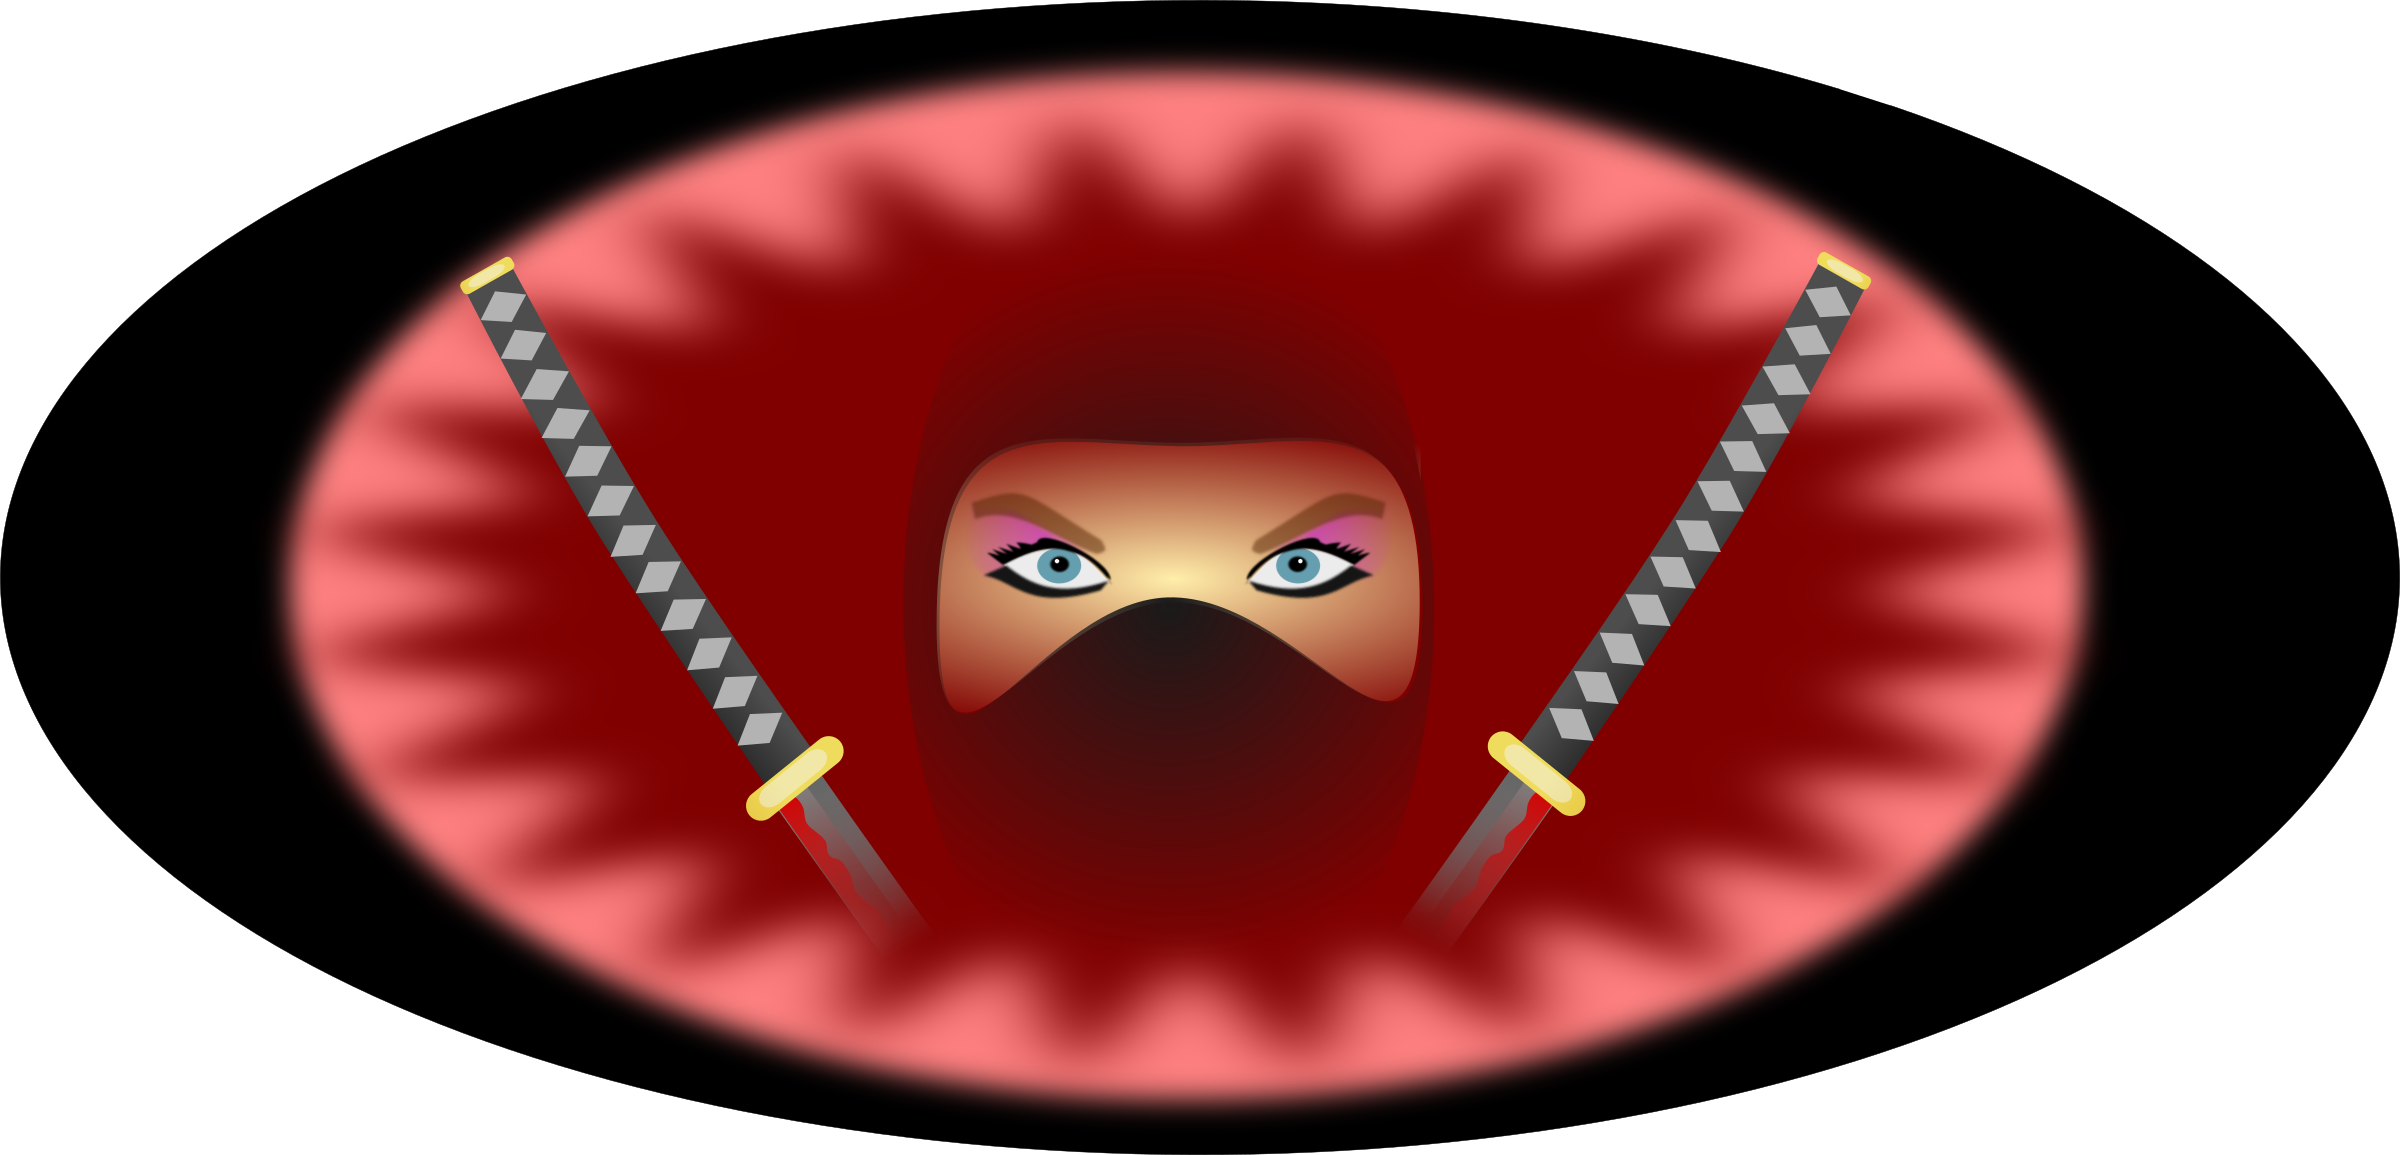 ninja woman in red by pauthonic